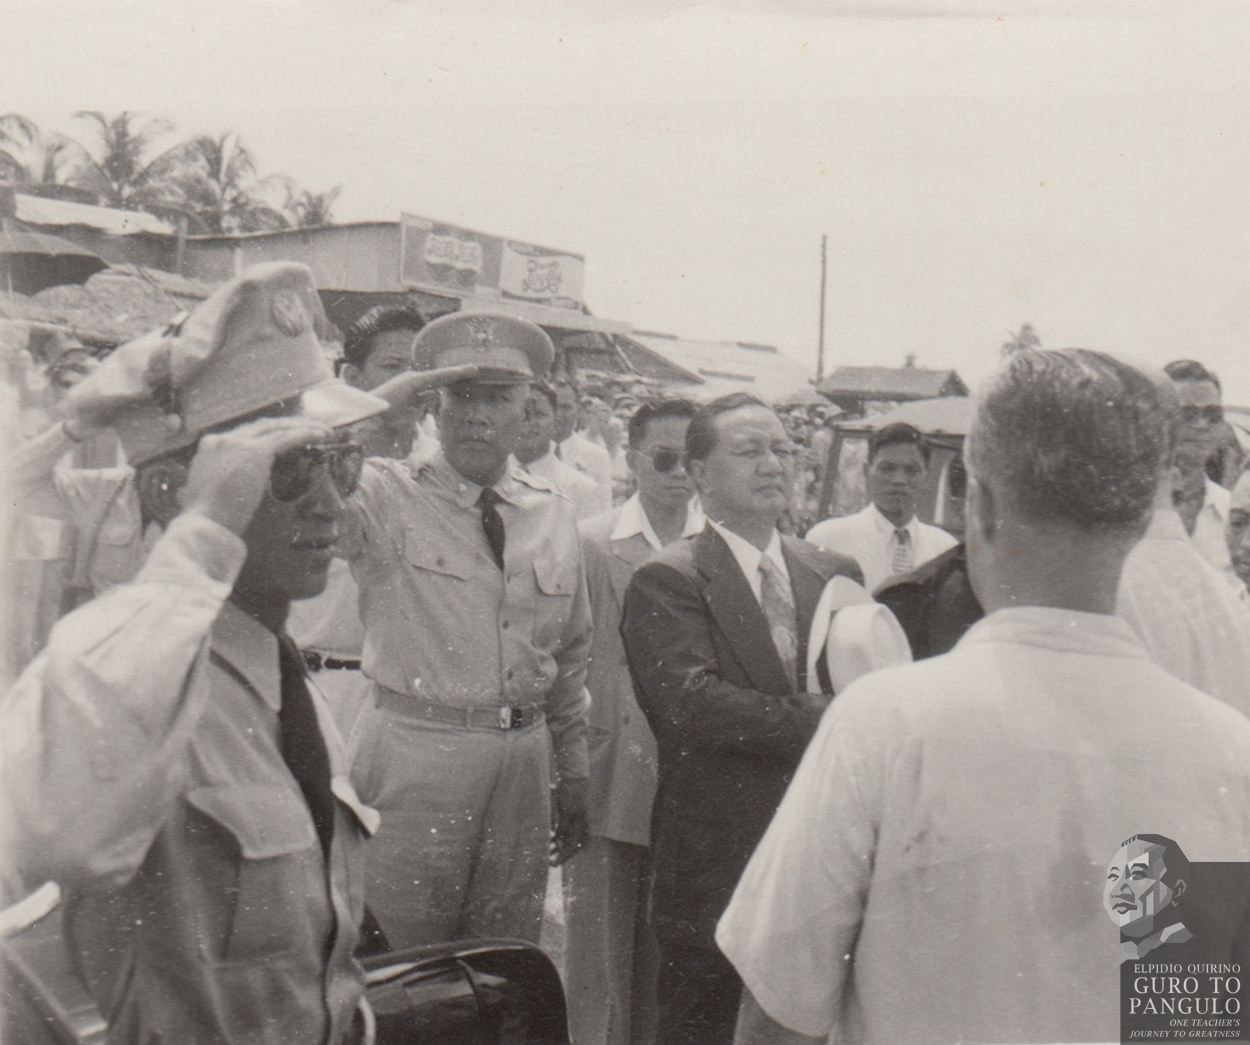 President Elpidio Quirino, responsible for accepting thousands of White Russians into the Philippines, visited the camp in Tubabao on October 28, 1949. When he was there, he noticed a barbed-wire fence surrounding the camp and immediately ordered to have it taken down. This, to the refugees, was a noble act of kindness, one that made them feel they were not in a refugee camp but that they were trustworthy and peace-loving people who belonged to society. Photo by Nikolai Hidchenko